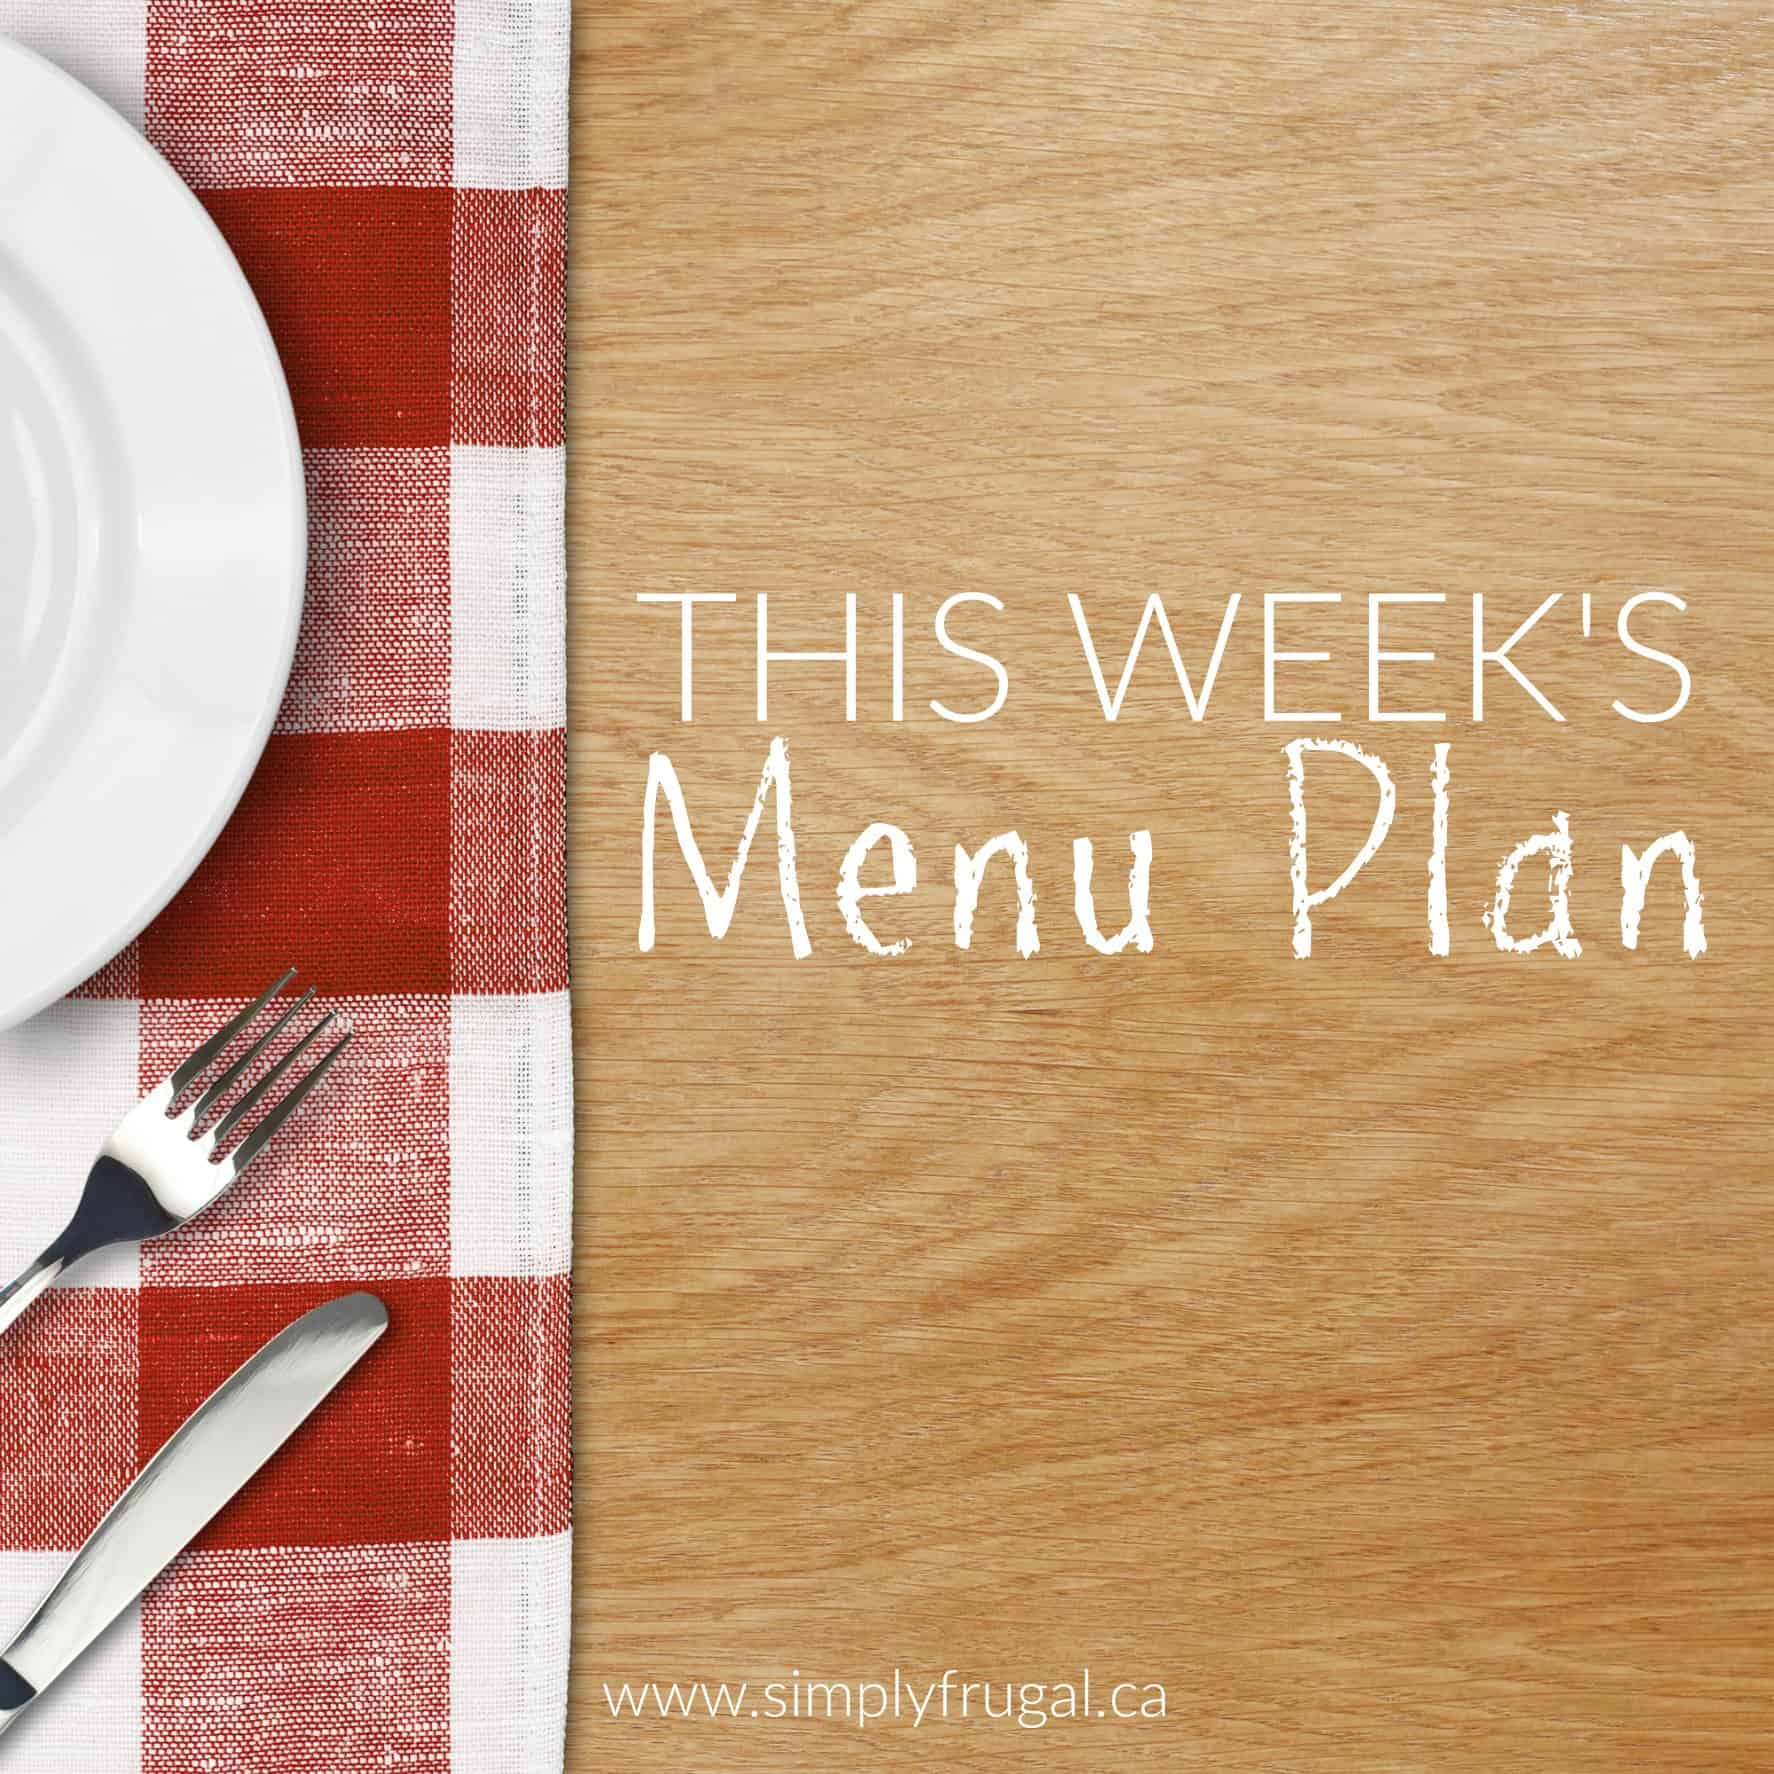 This week's menu plan from SimplyFrugal.ca